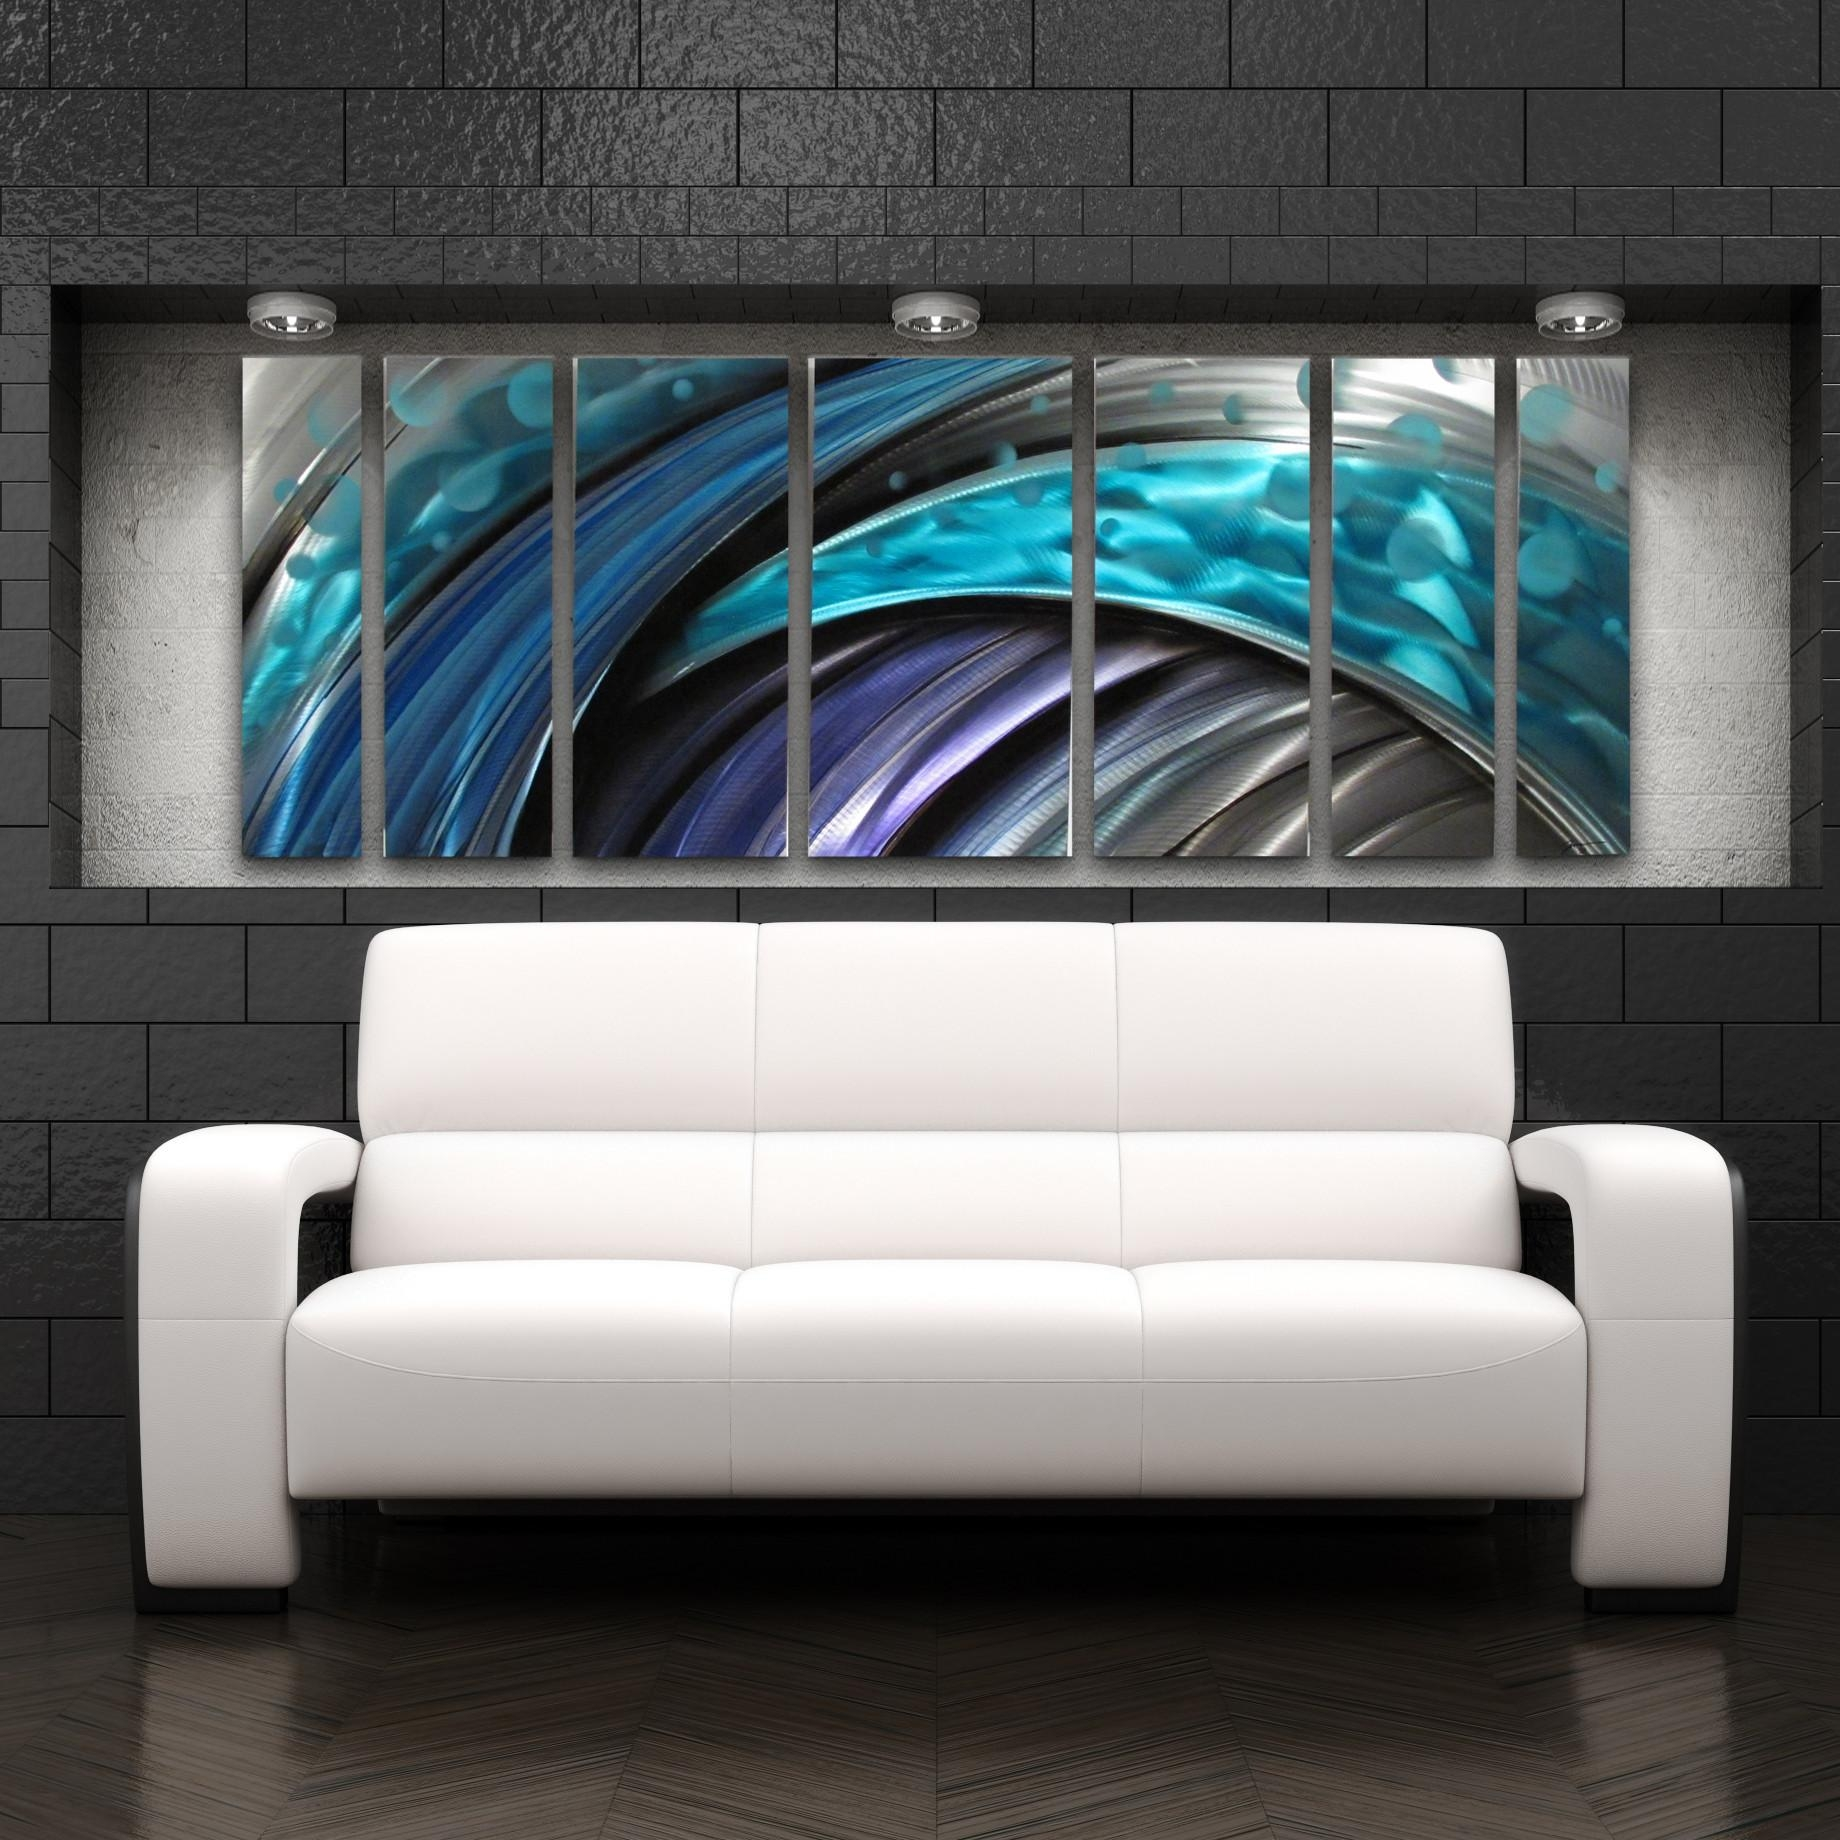 Modern Metal Art Cool Modern Wall Art – Home Decor Ideas With Regard To Unique Modern Wall Art And Decor (View 6 of 20)